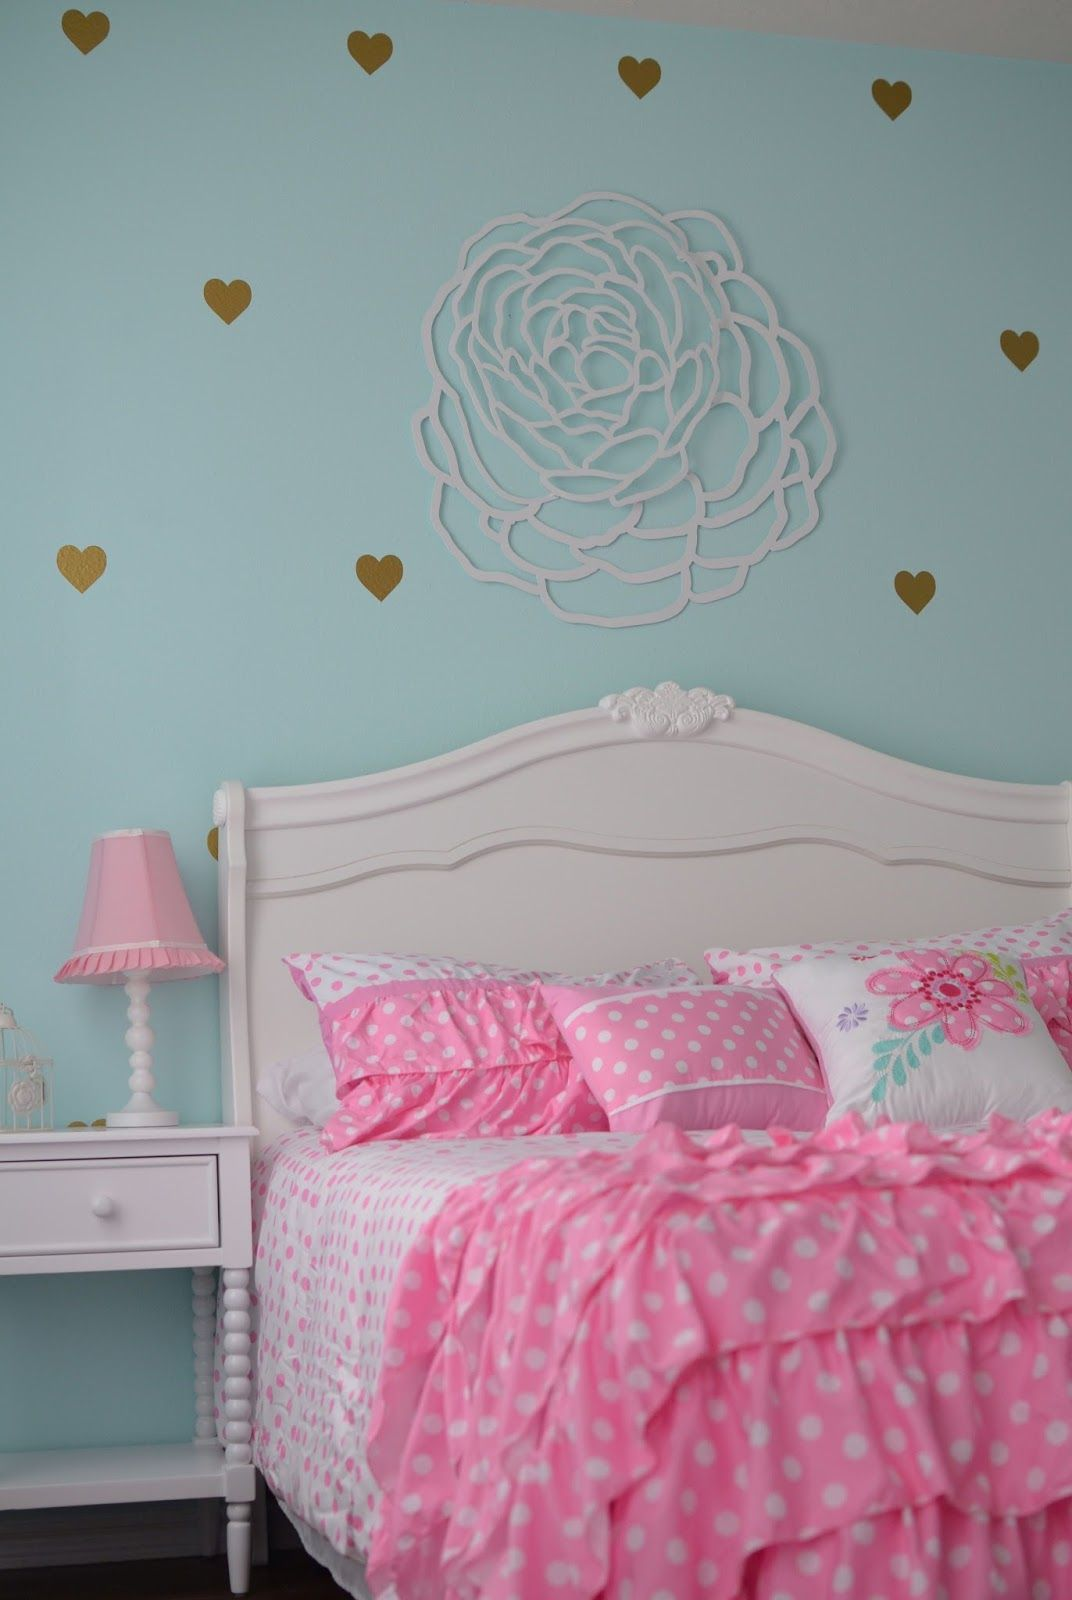 Little Girl's Room. Mint / Aqua, Pink, Gold And White